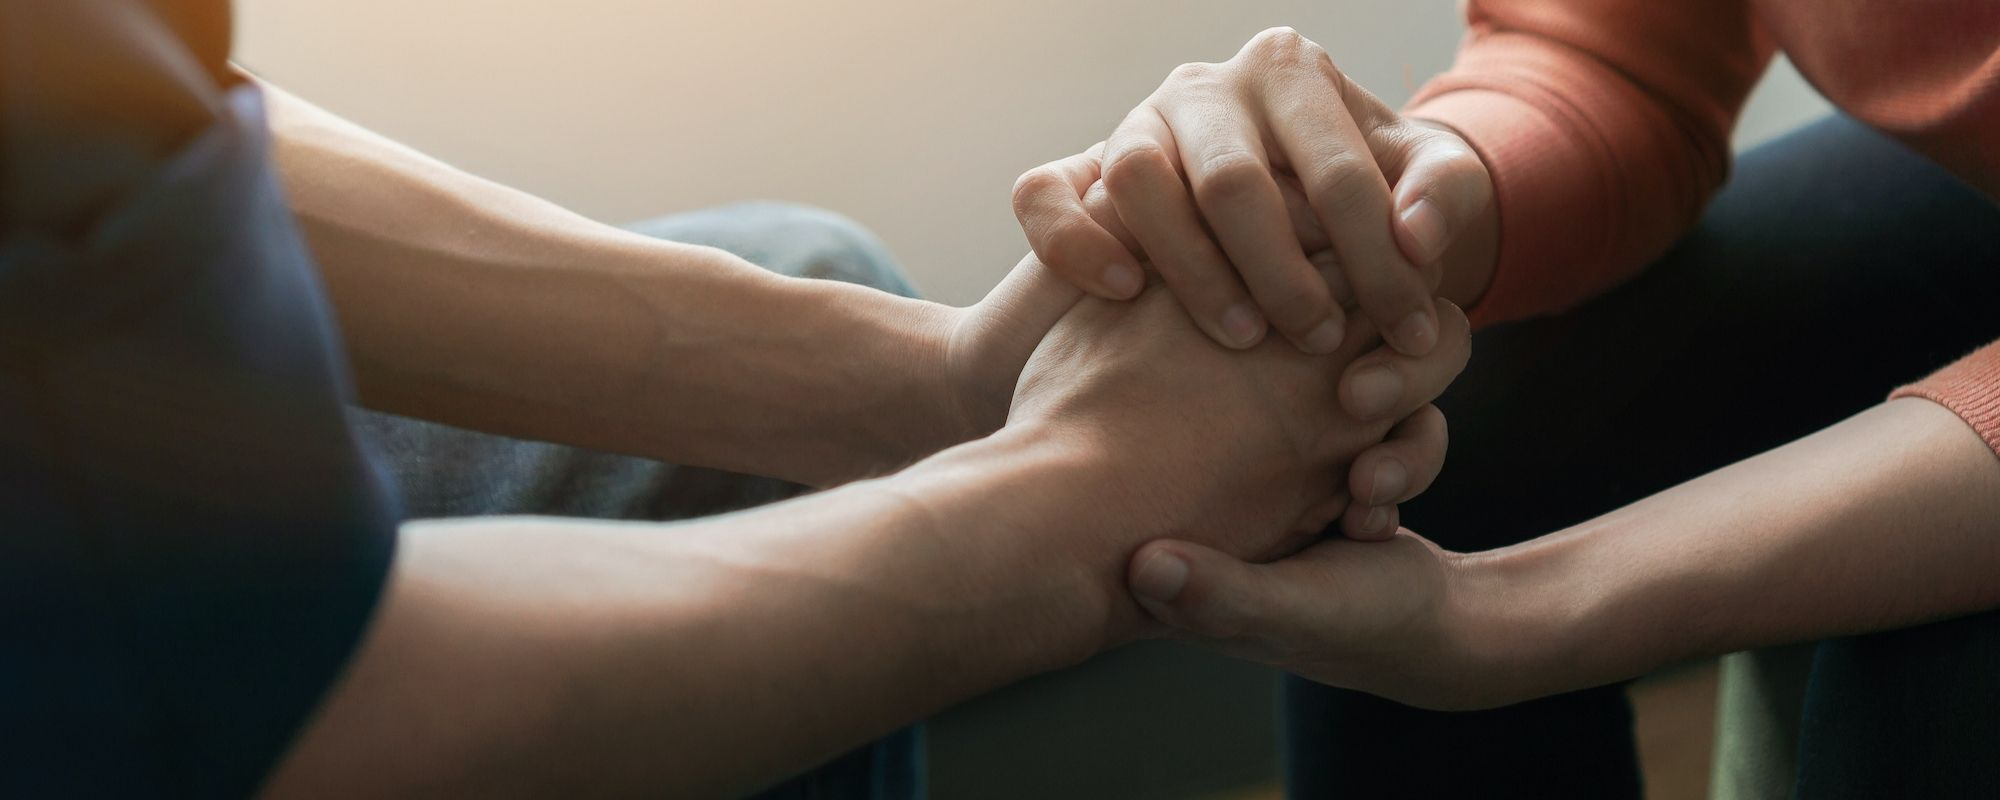 Giving up alcohol: A closeup of two people holding hands in support of each other